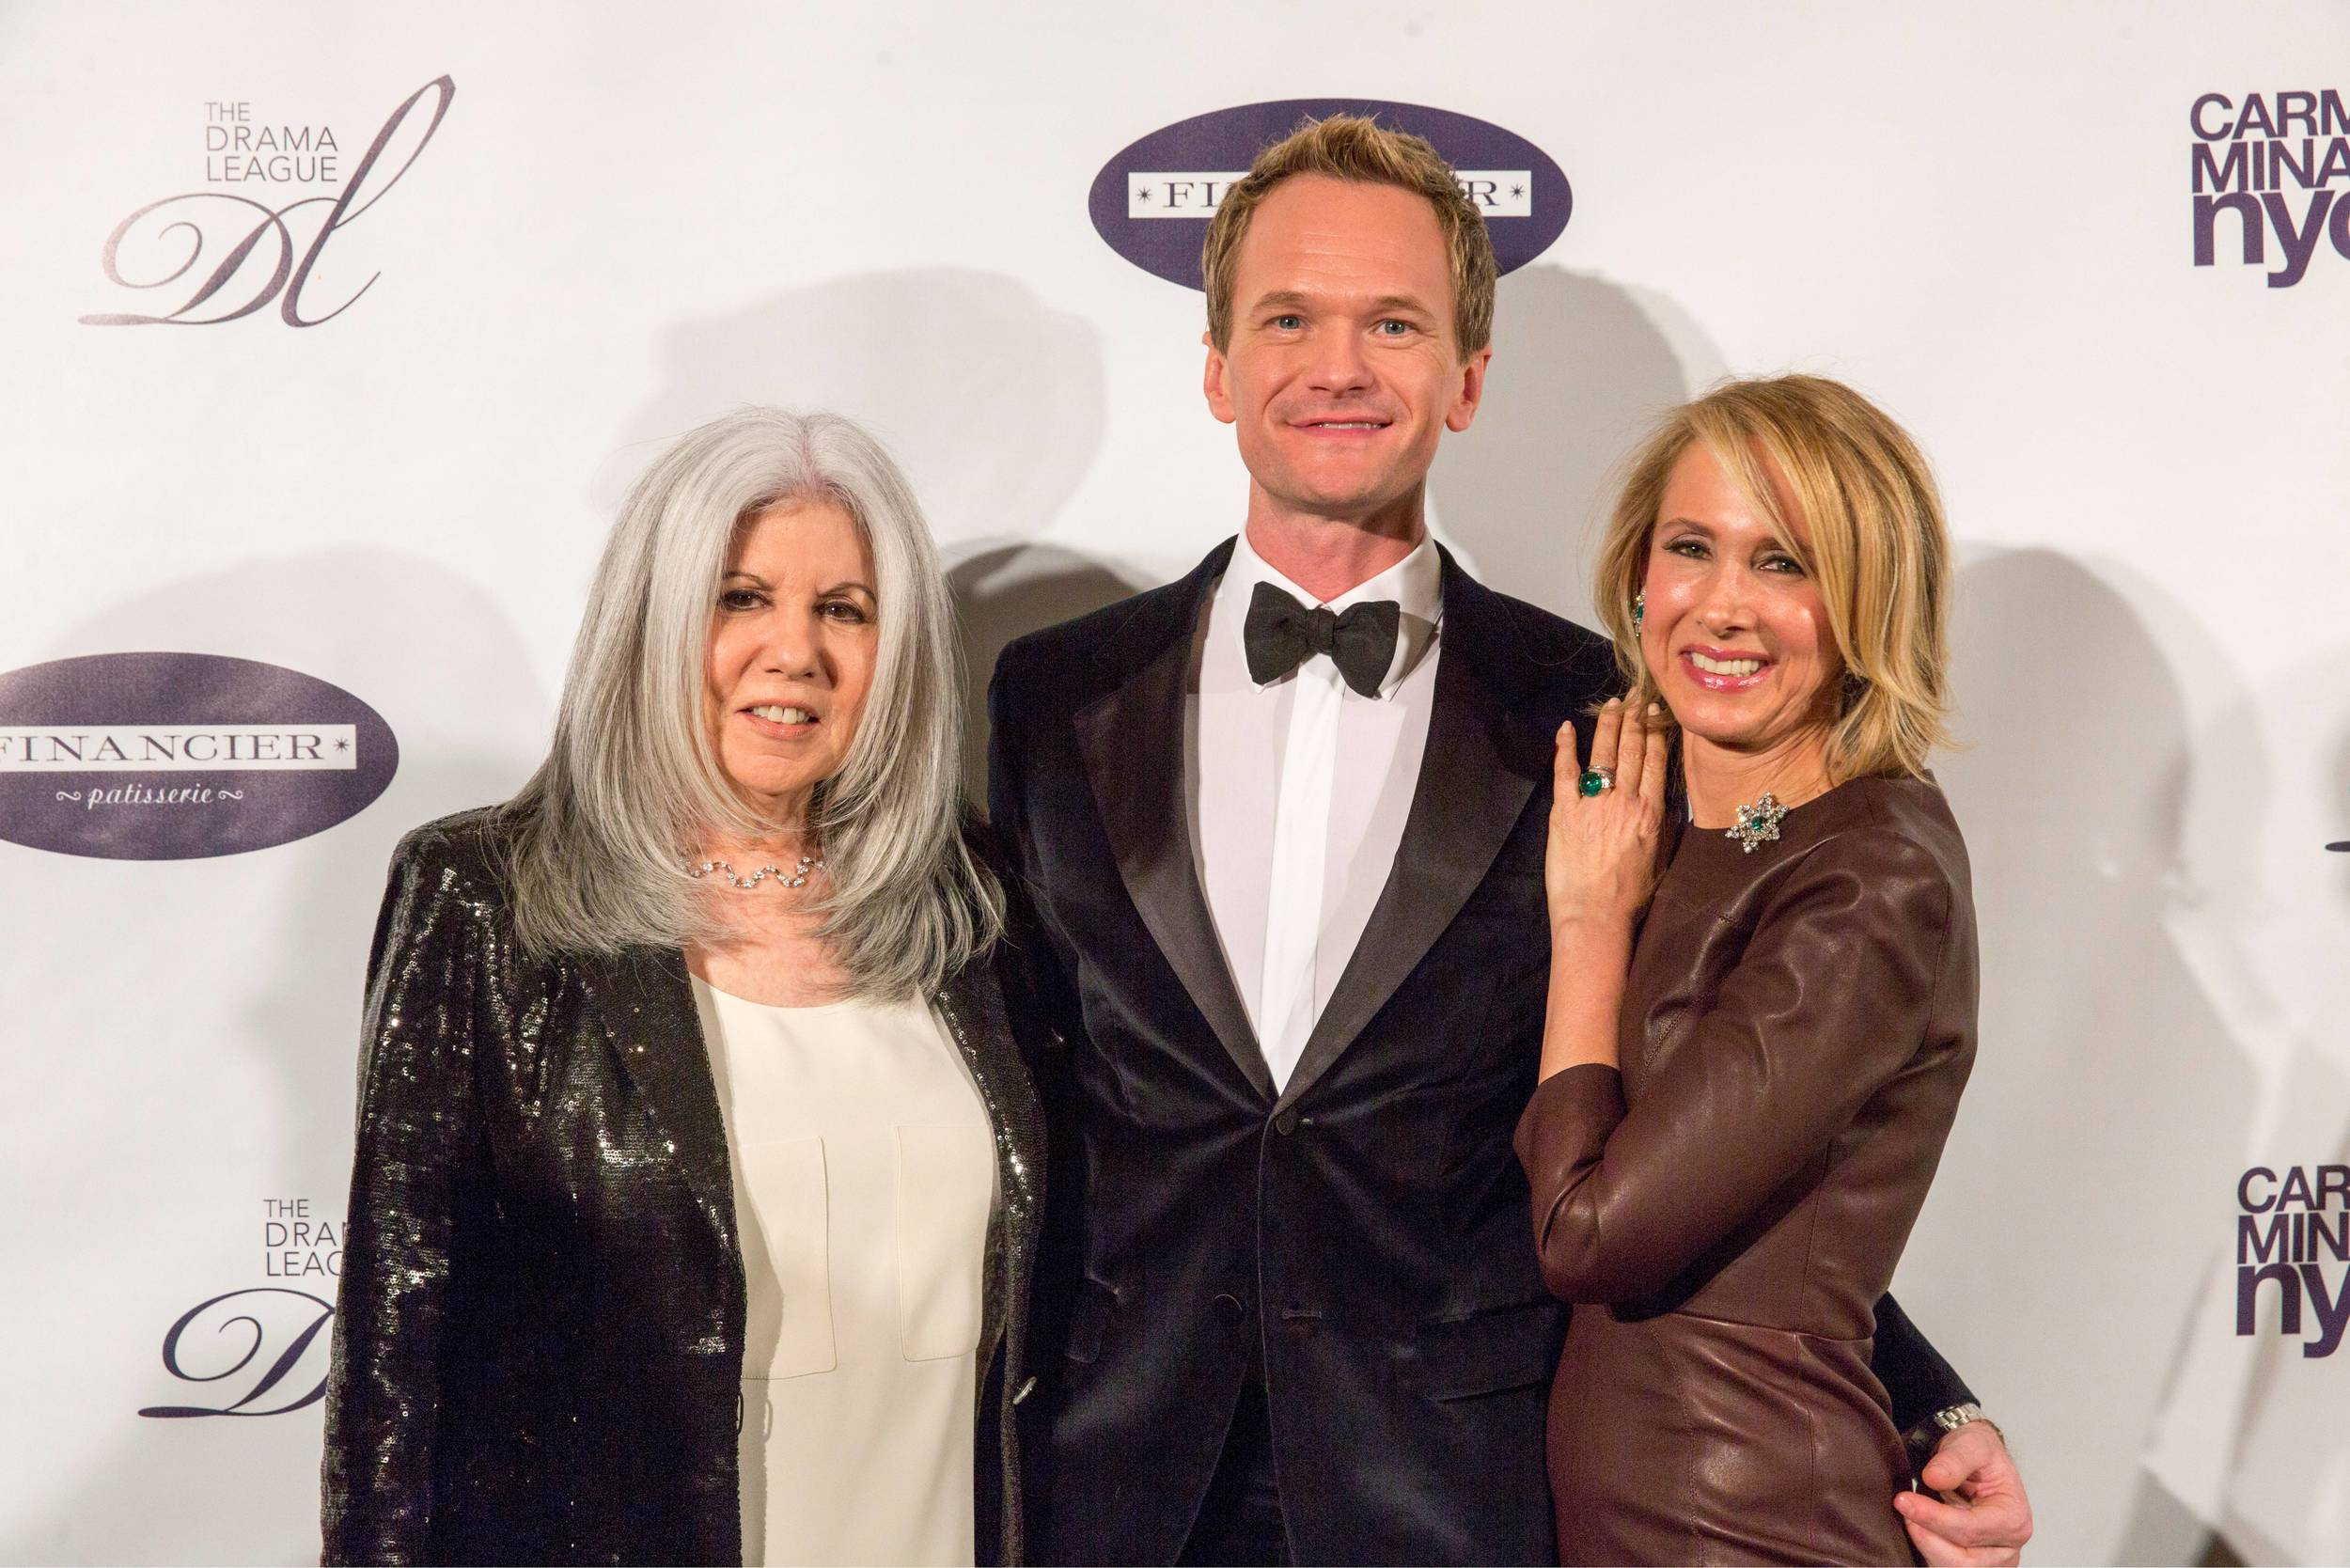 Ellen Fox, Neil Patrick Harris, Amy Eller - Drama League Gala 2014